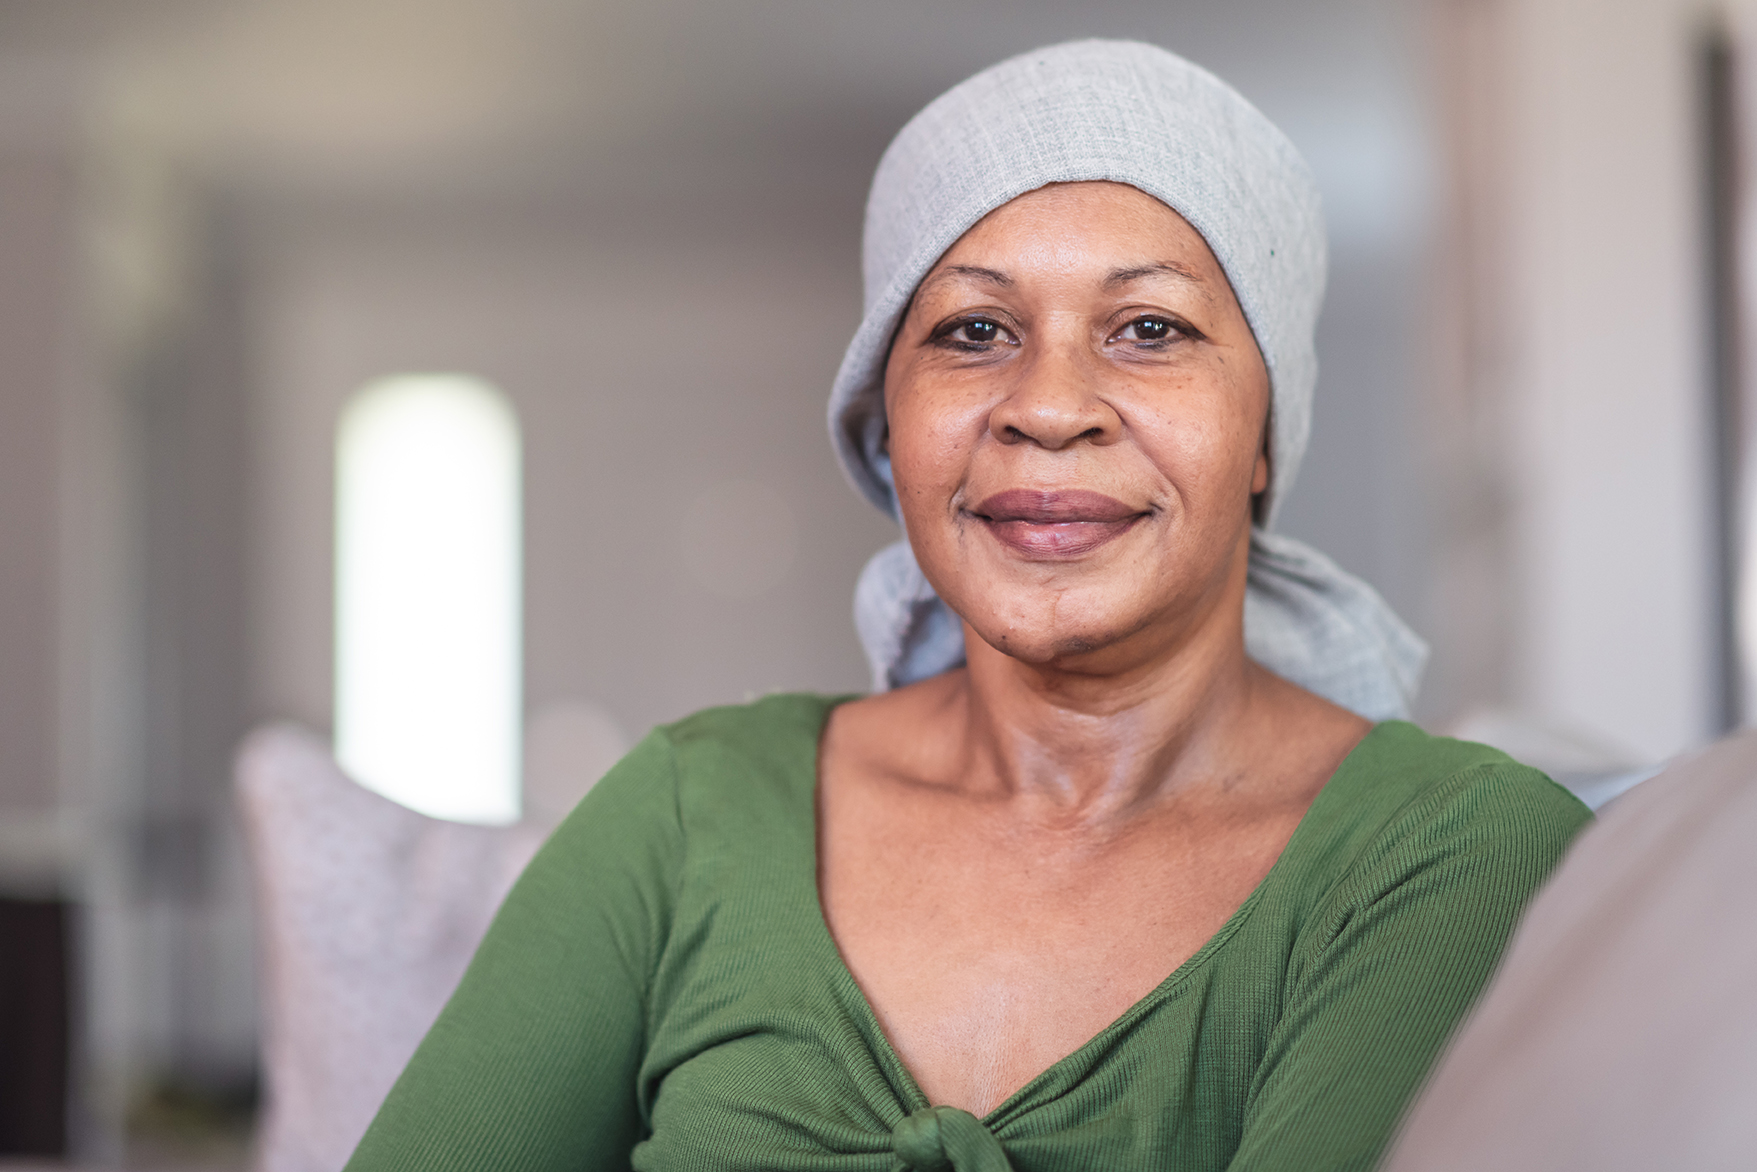 A mature black woman with cancer is wearing a scarf on her head. She is sitting at home in her living room. She is smiling directly at the camera. She is full of gratitude and hope for recovery.